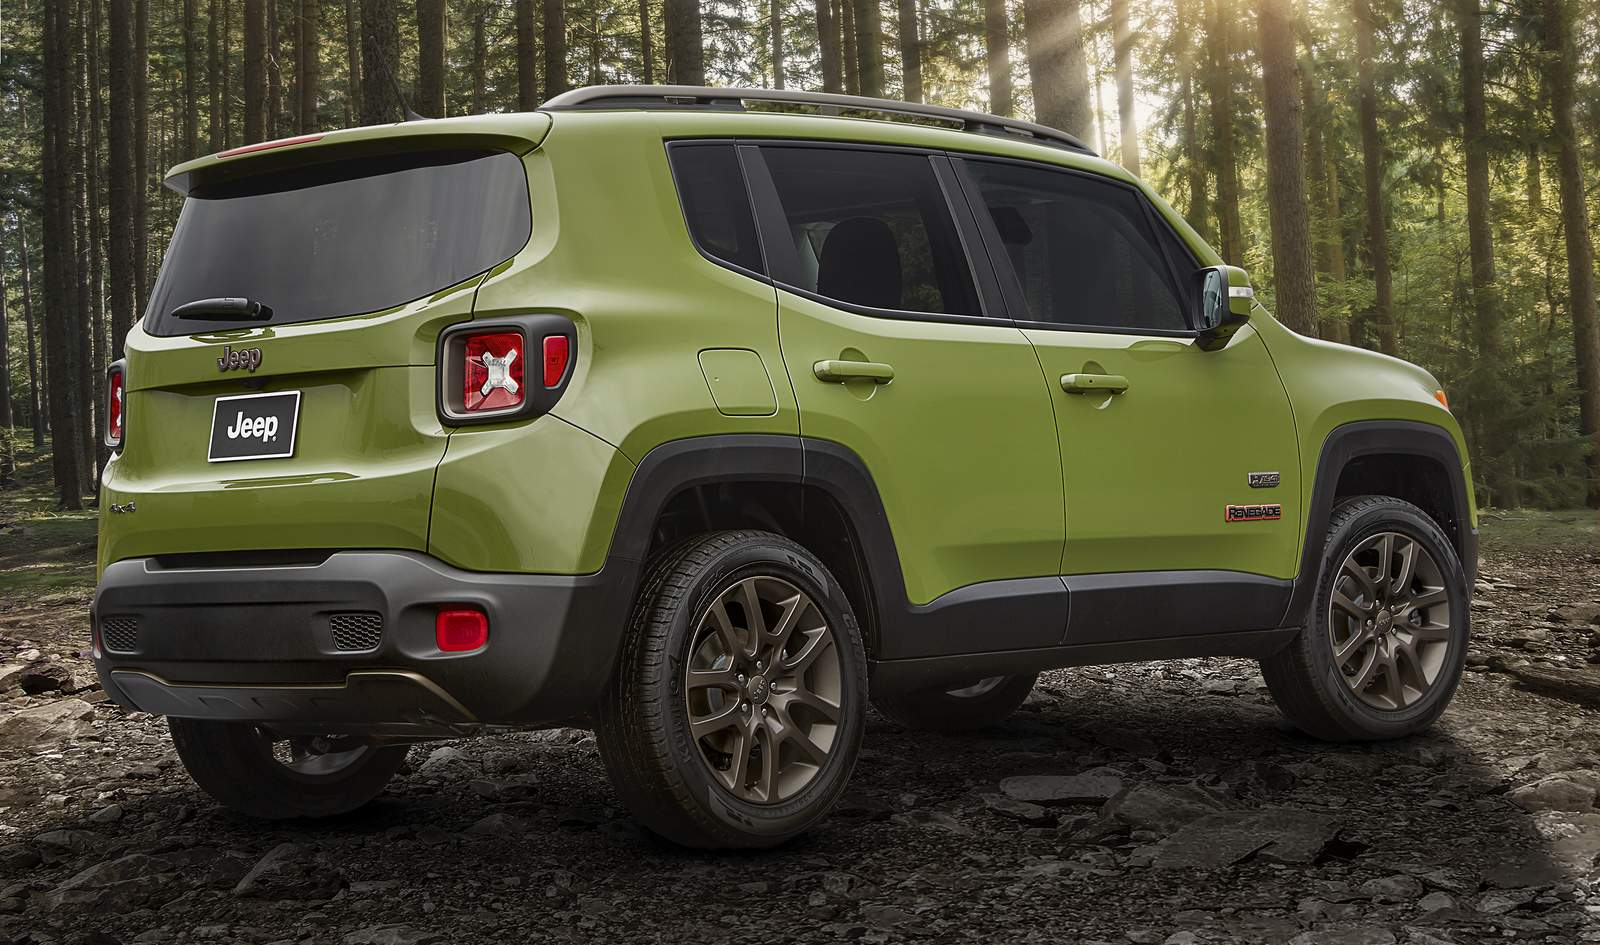 jeep renegade 2017 ficar mais econ mico e completo car blog br. Black Bedroom Furniture Sets. Home Design Ideas